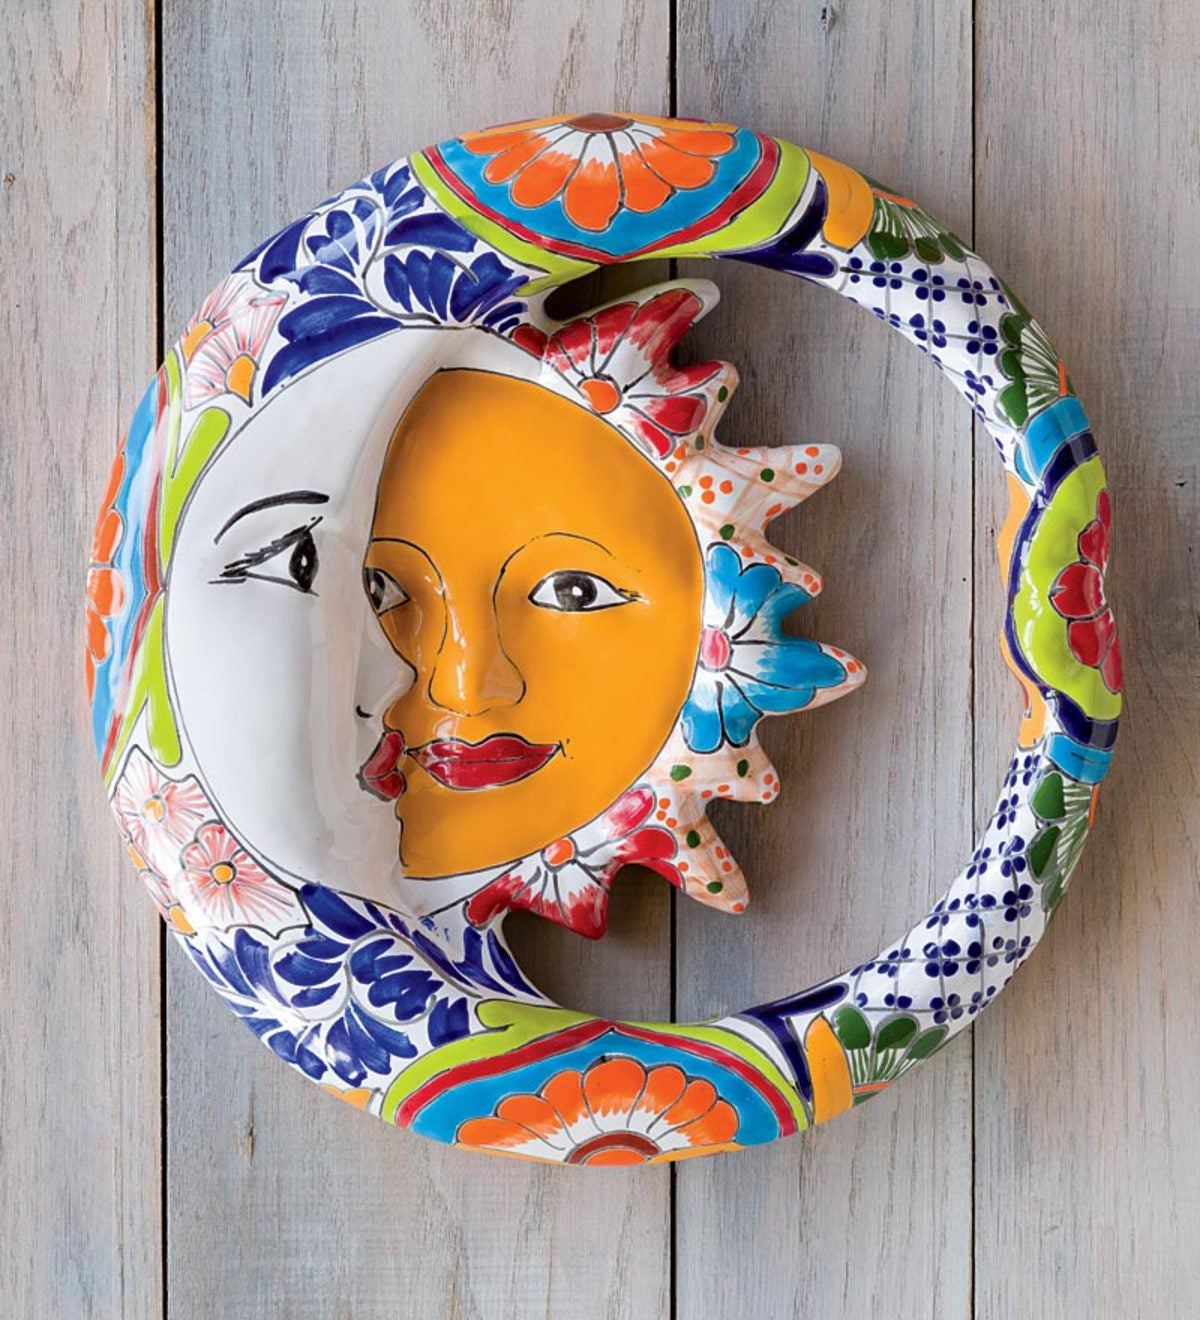 Plow And Hearth Talavera Wall Accent Metal: Talavera-Inspired Ceramic Eclipse Wall Accent